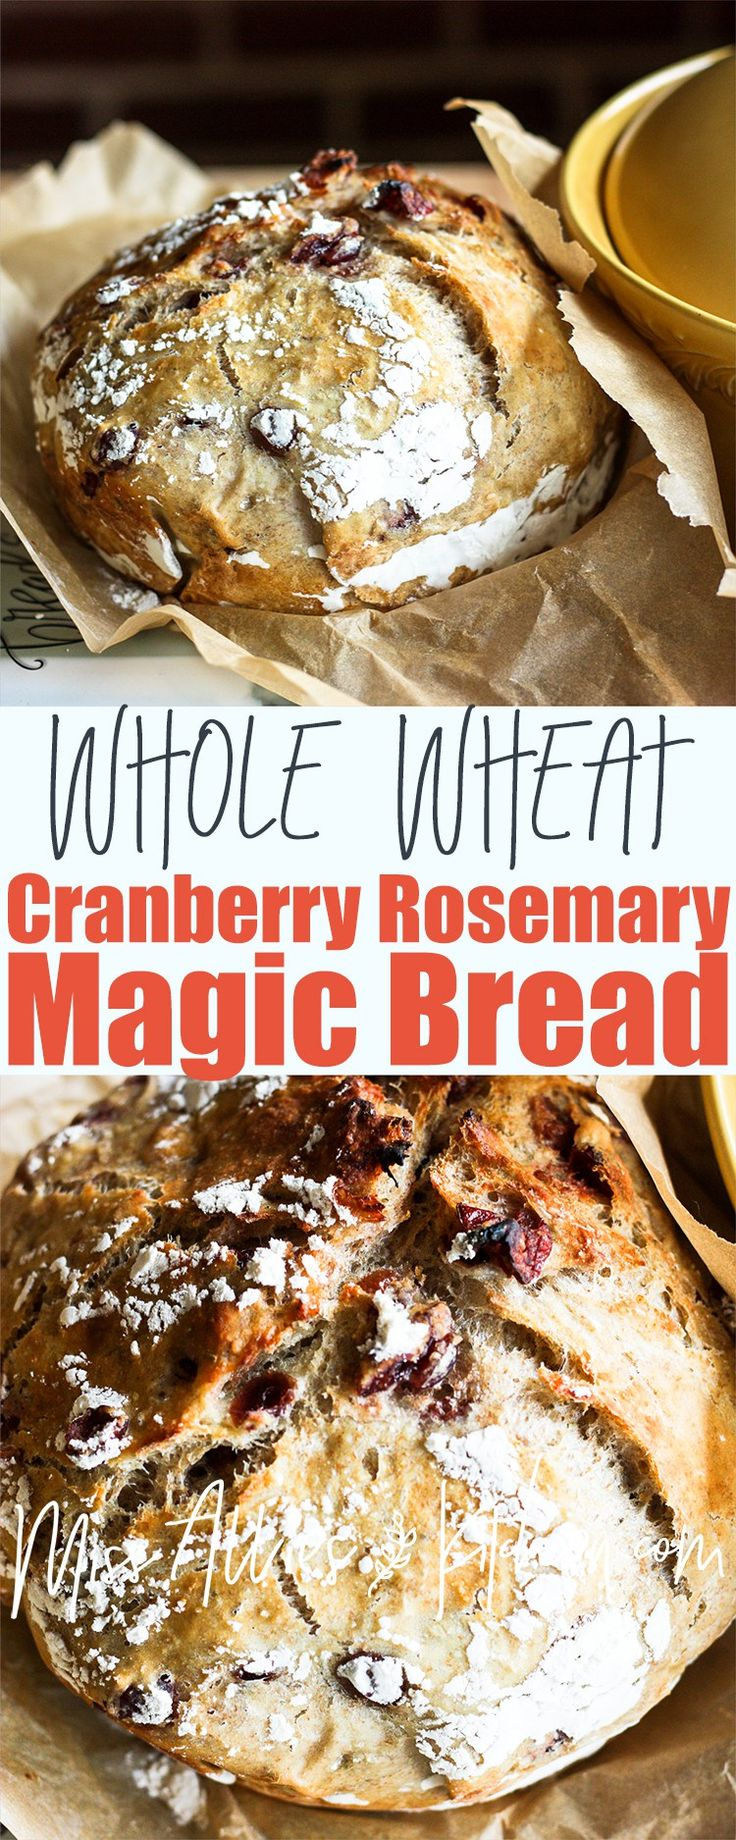 Whole Wheat Cranberry Rosemary Magic Bread! Easy, simple & no-knead!